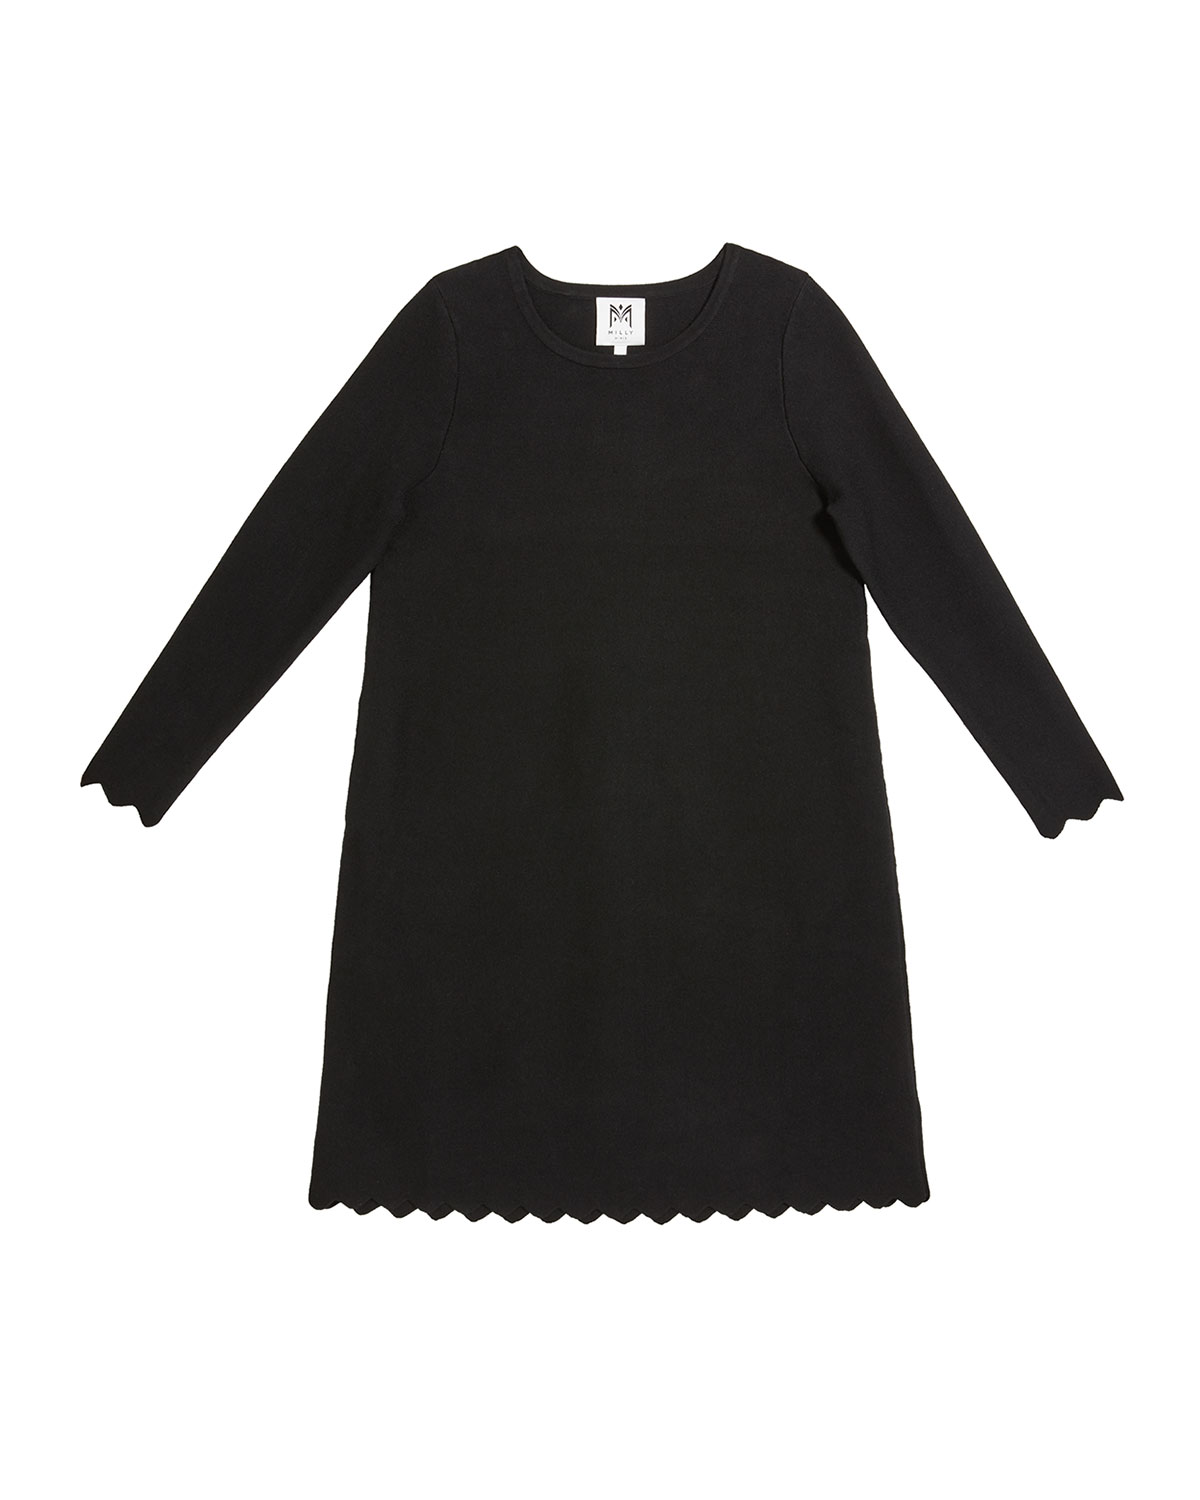 Milly Minis Girl's Scalloped A-Line Long-Sleeve Knit Dress, Size 7-16